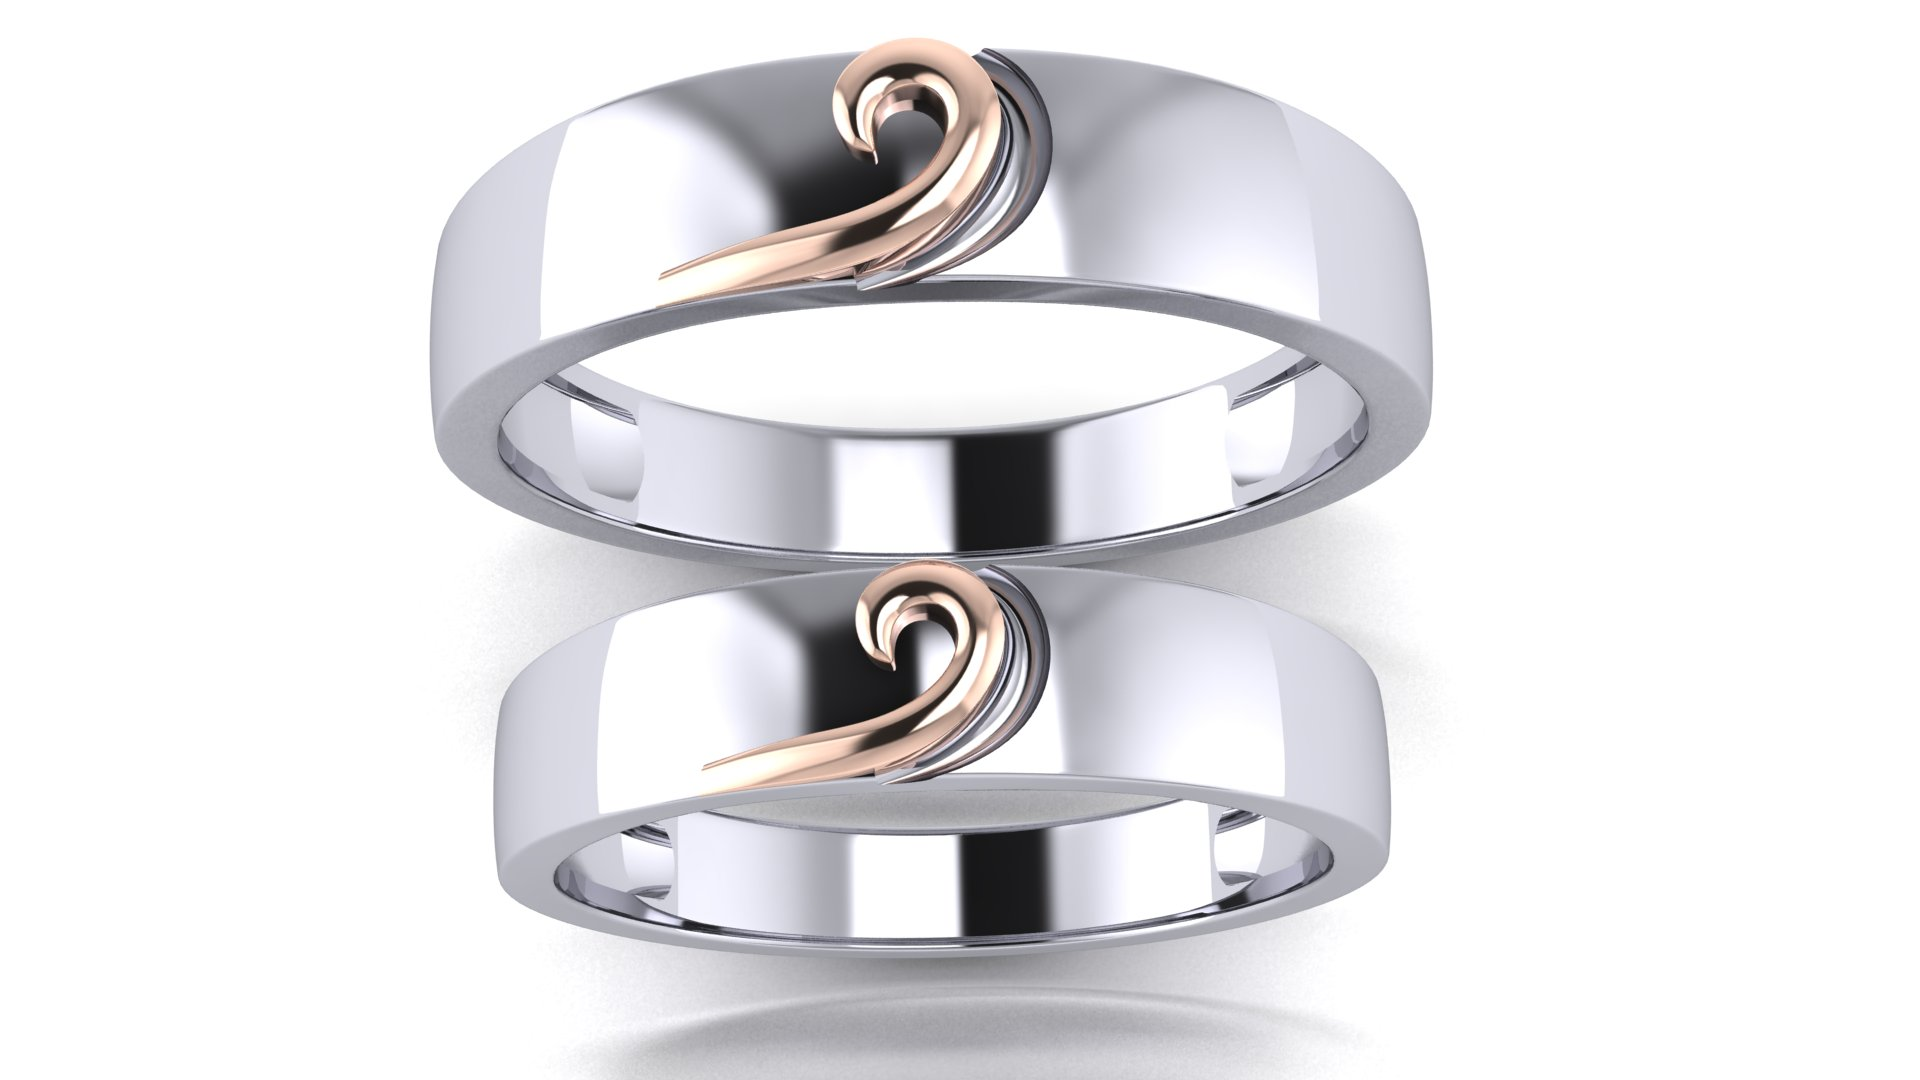 Metal & Silver Couple Bands Twin Ring